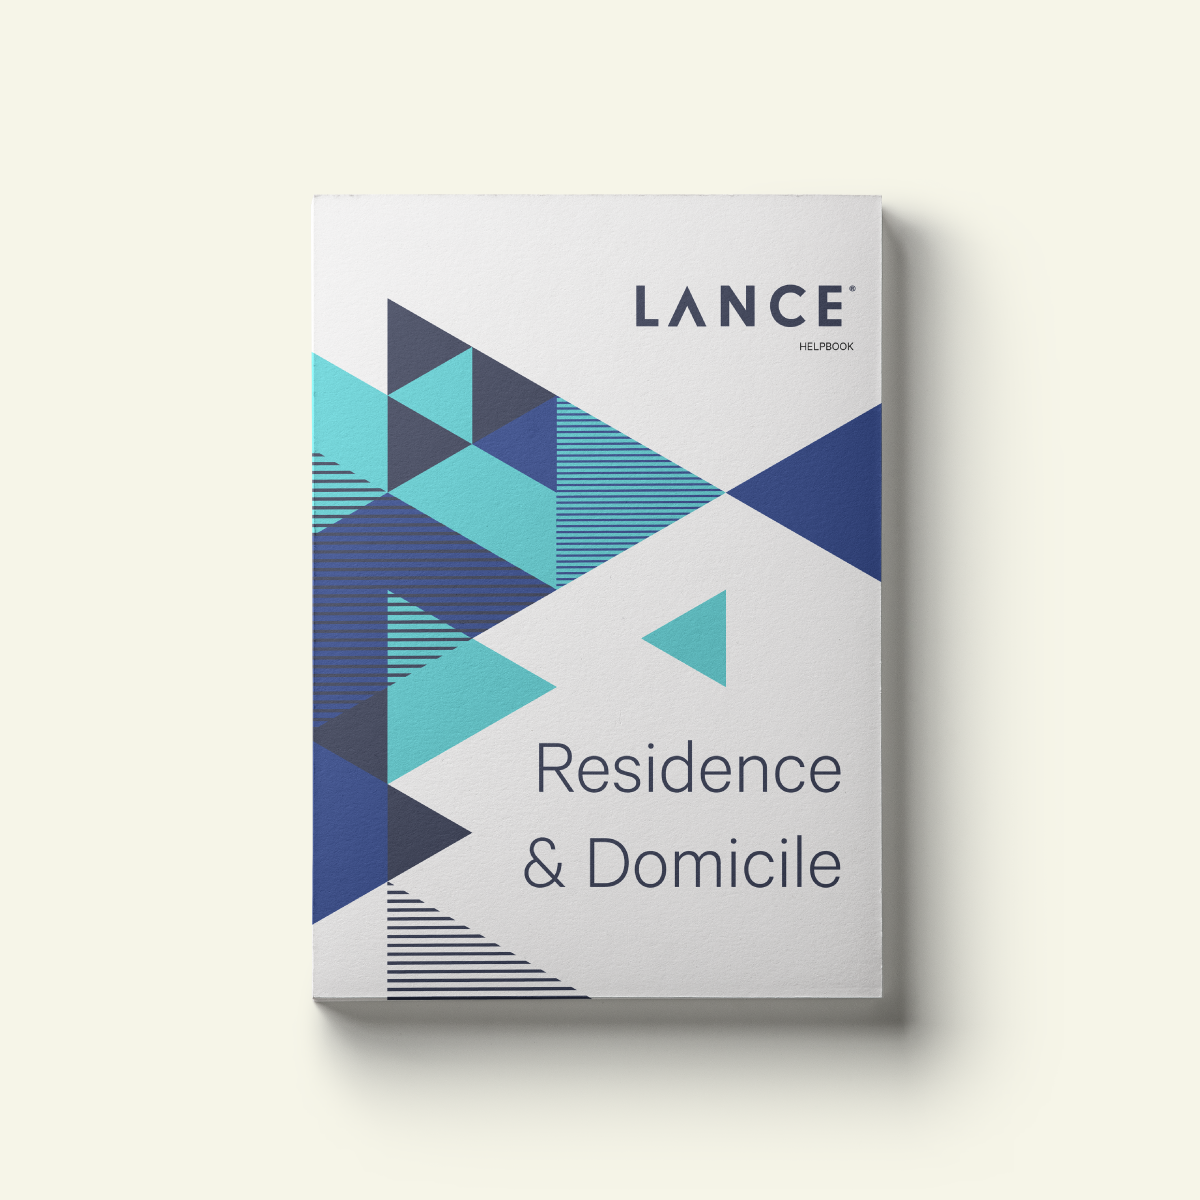 Lance - Stand Out studio6.png